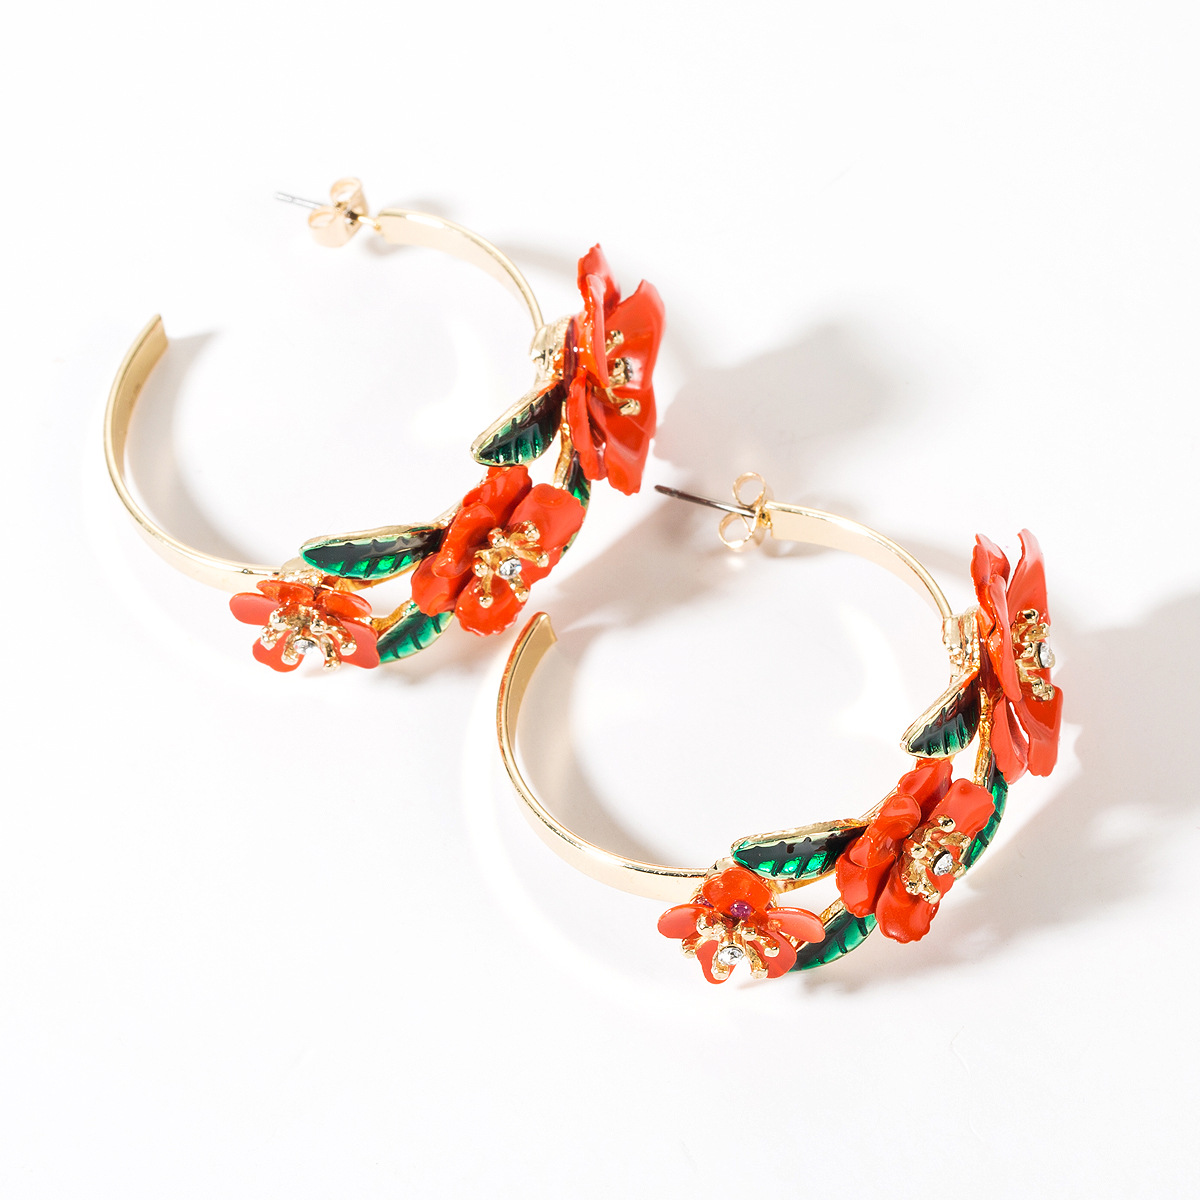 Retro new alloy spray paint flower hoop earrings NHJE149105